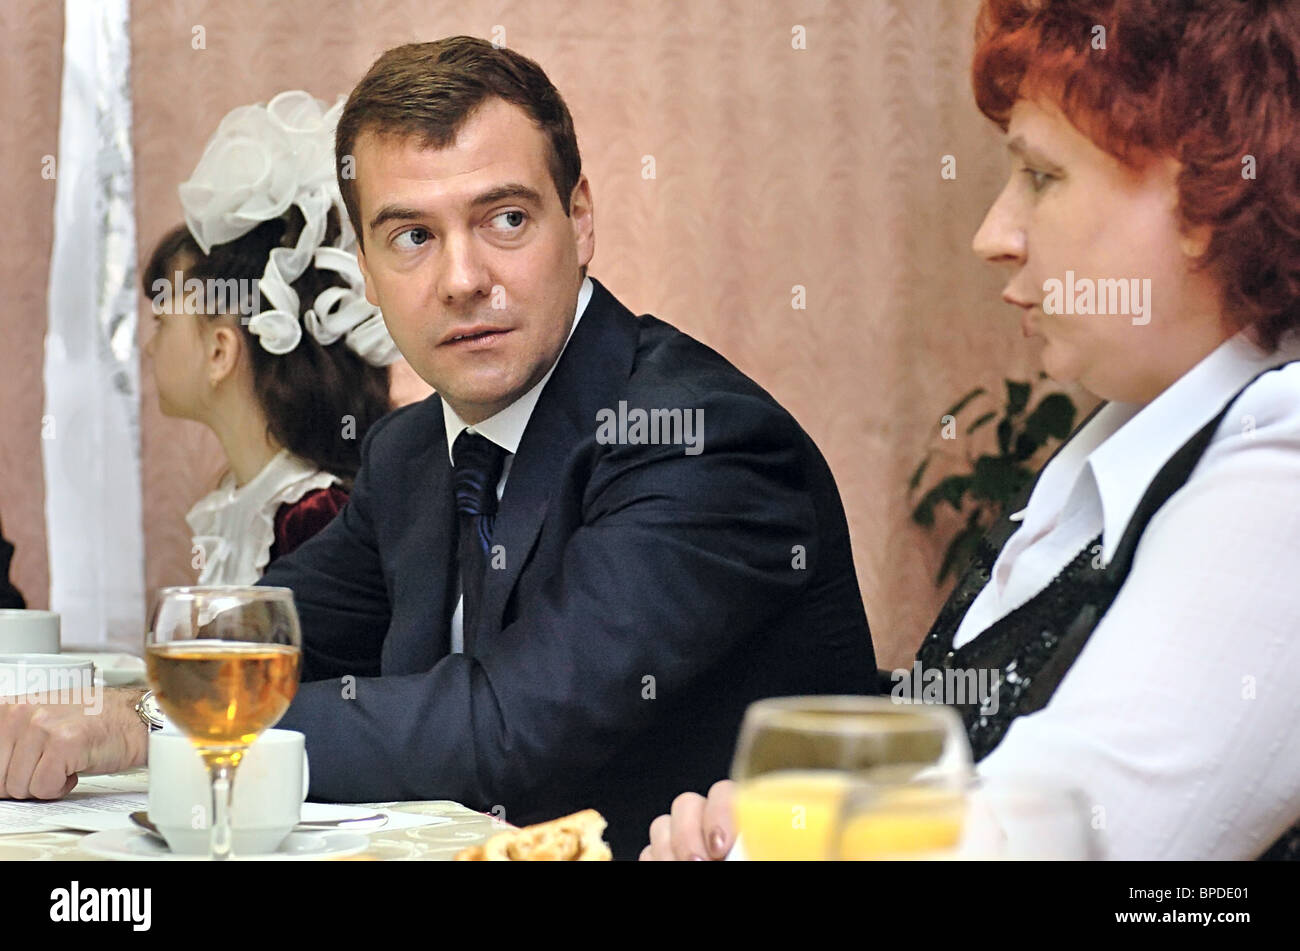 Russia's First Deputy PM Dmitry Medvedev visits City of Perm Stock Photo